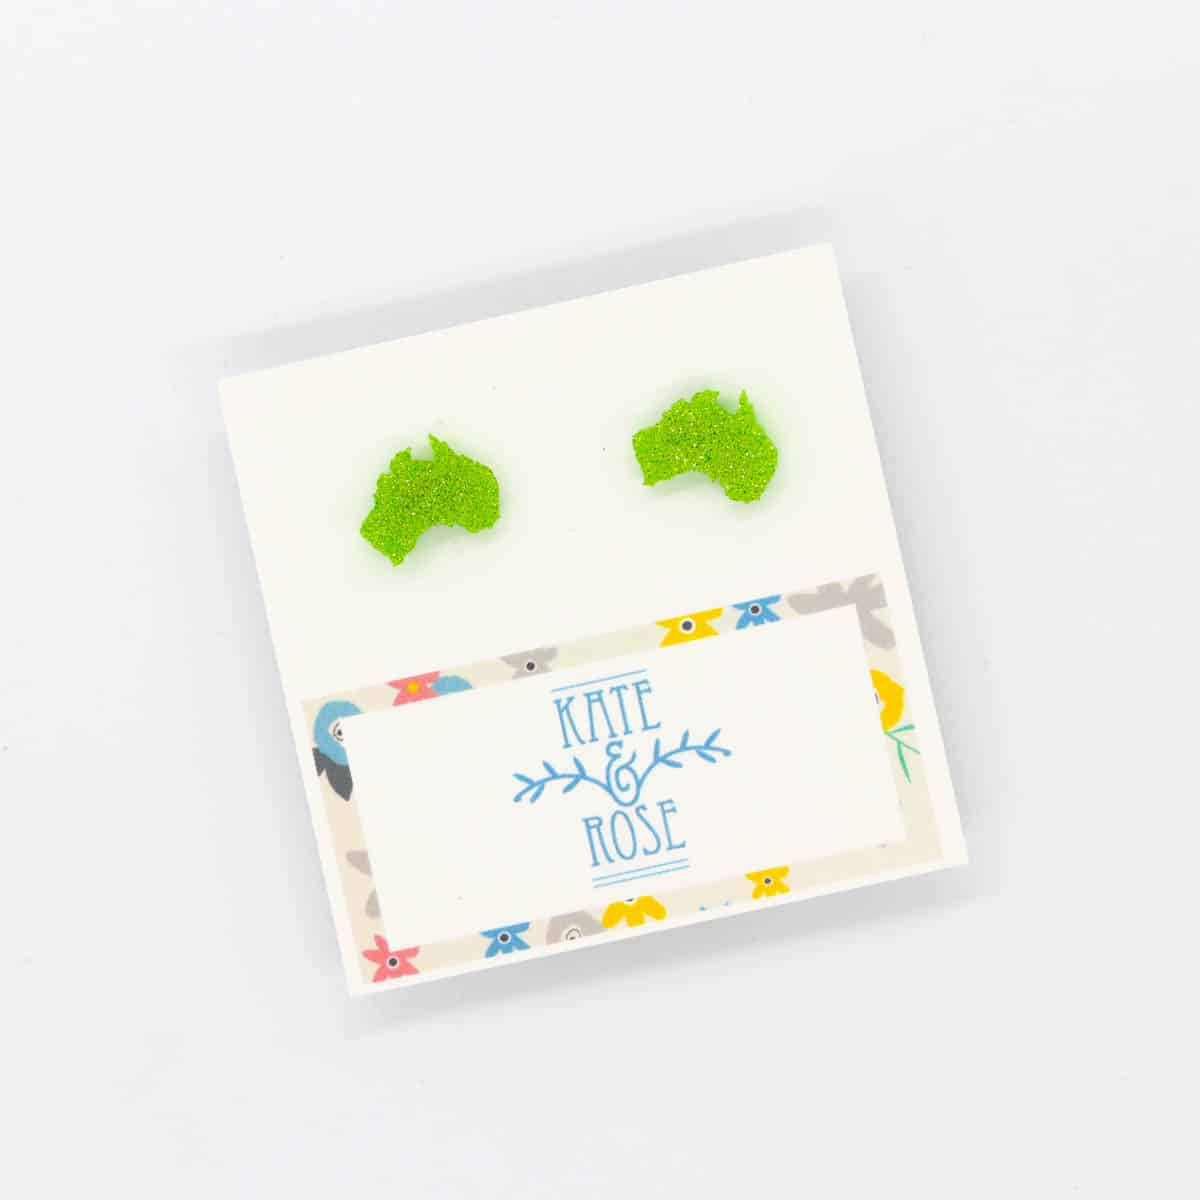 Lime Glitter Aussie Map Studs  By Kate And Rose (Fitzroy) $14.95